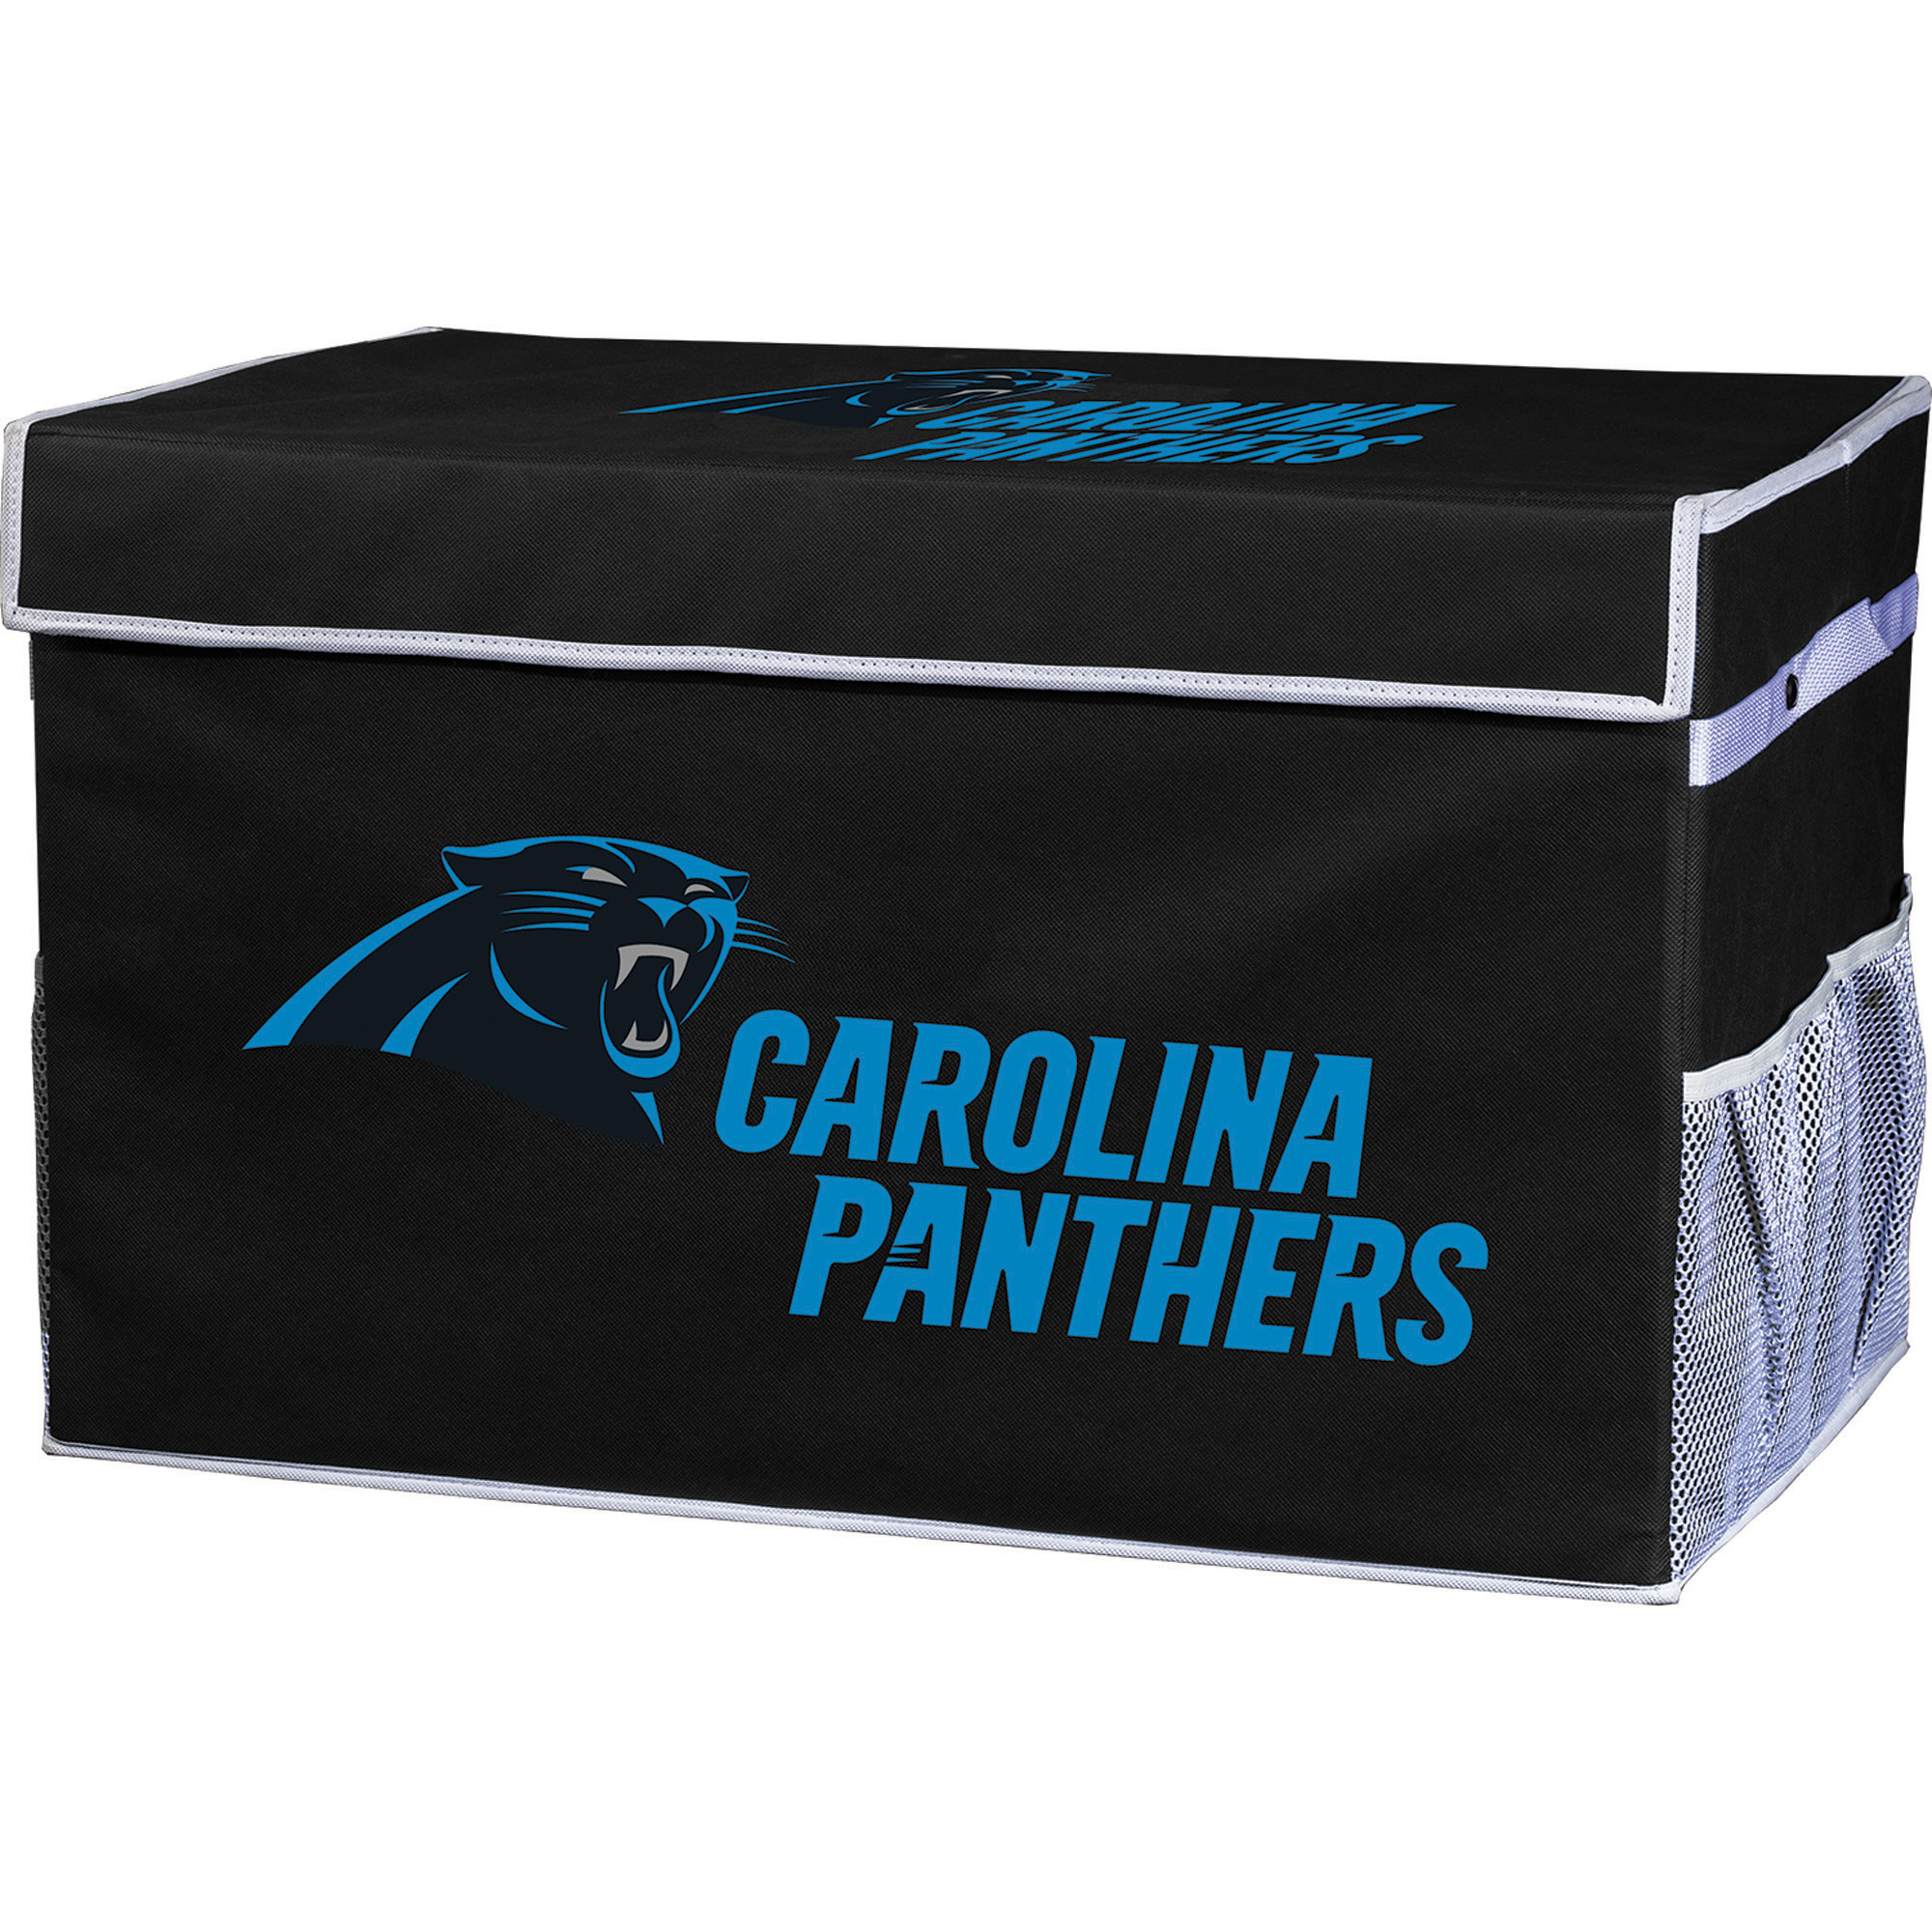 Franklin Sports NFL Carolina Panthers Collapsible Storage Footlocker Bins - Small